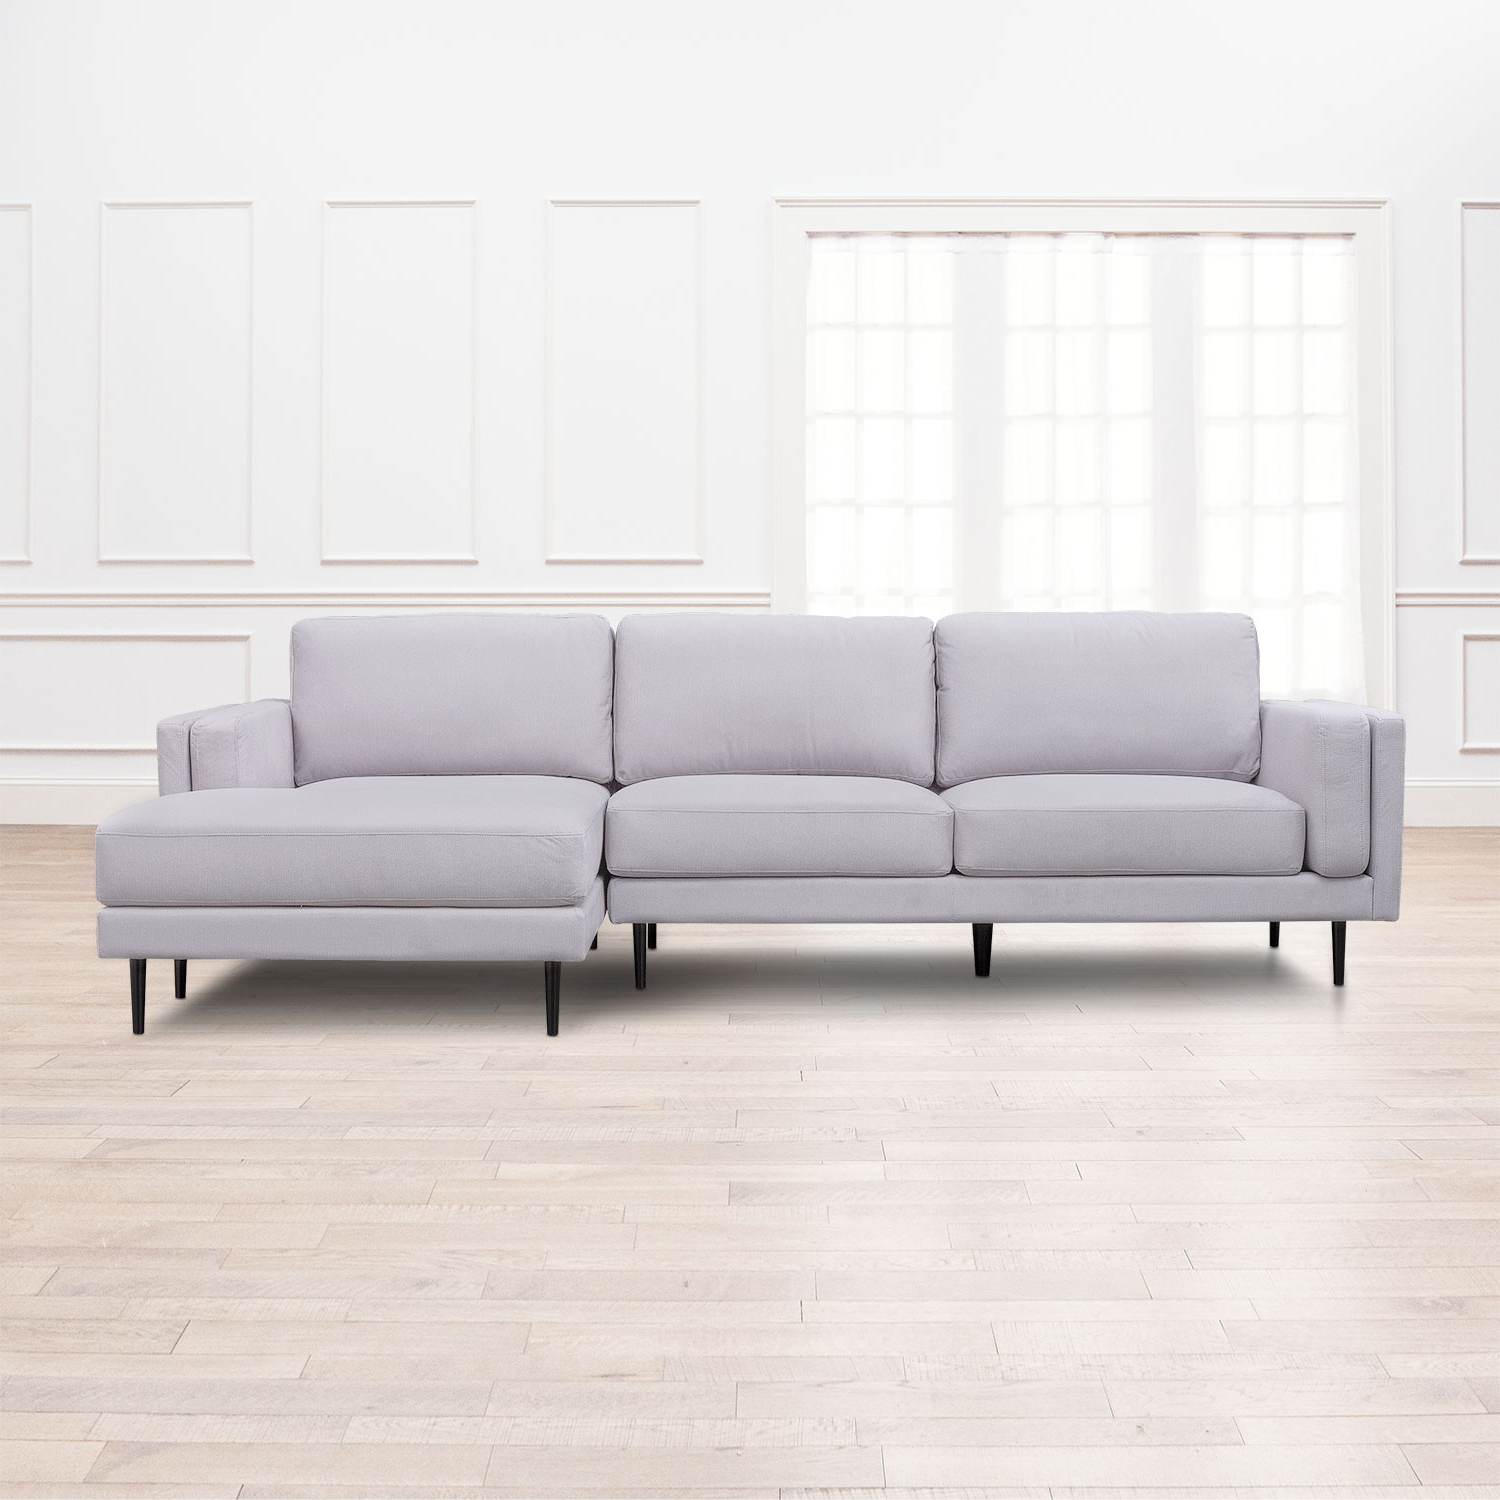 West End 2 Piece Sectional With Right Facing Chaise – Light Gray In Well Liked Mcdade Graphite 2 Piece Sectionals With Laf Chaise (View 1 of 20)